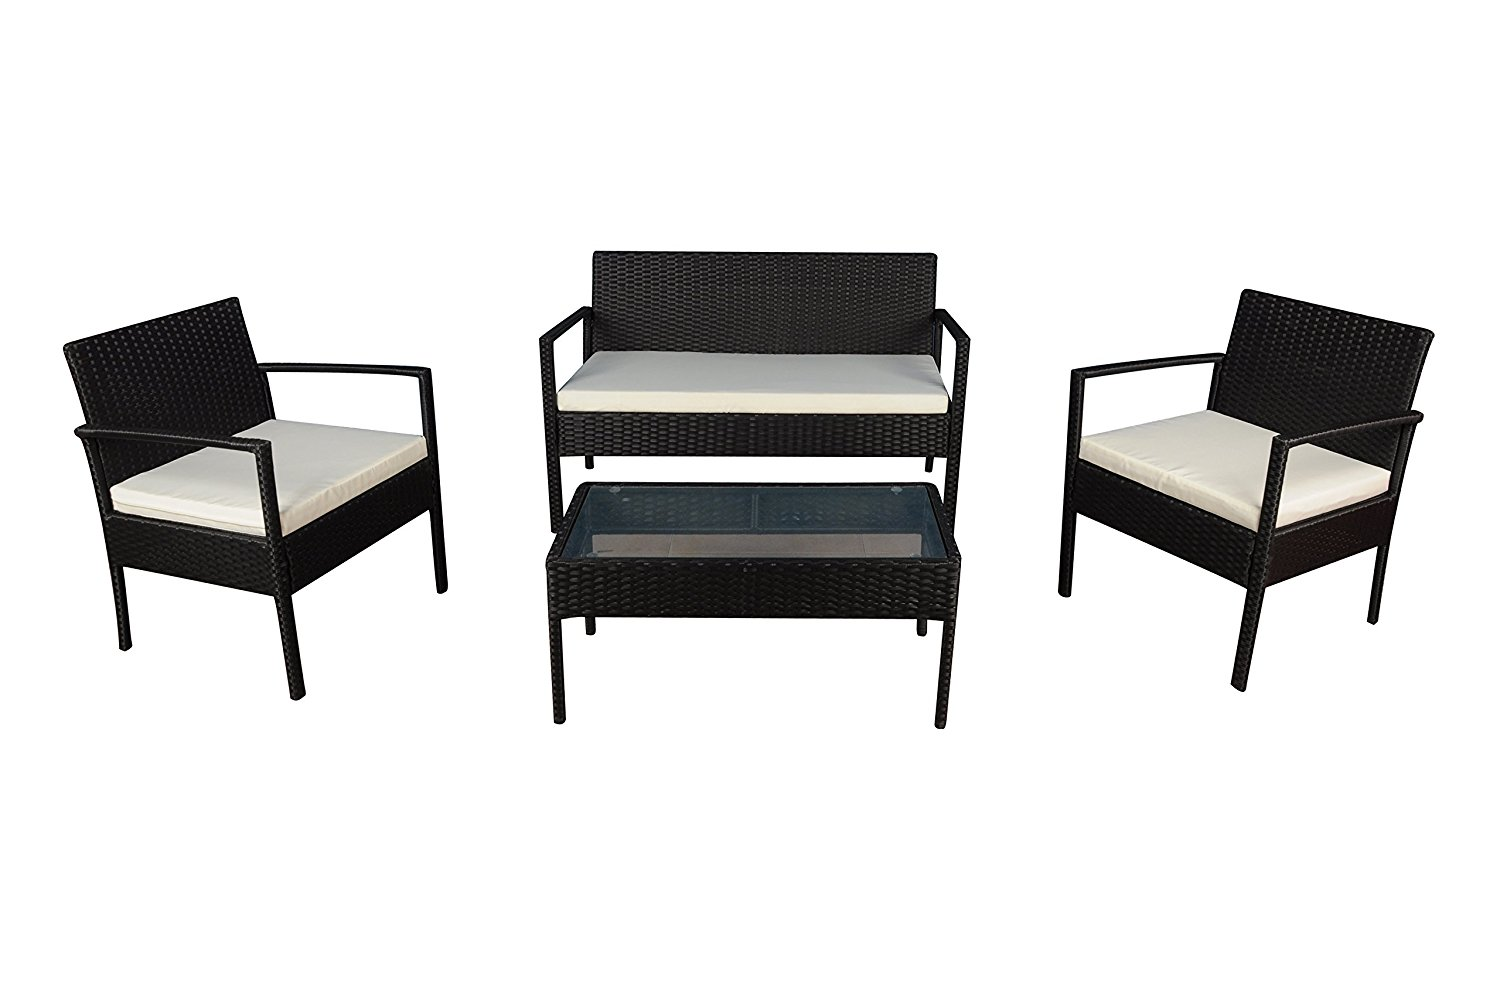 Modern Outdoor Garden, Patio 4 Piece Set - Wicker Sofa Furniture Set (Black / Ivory)